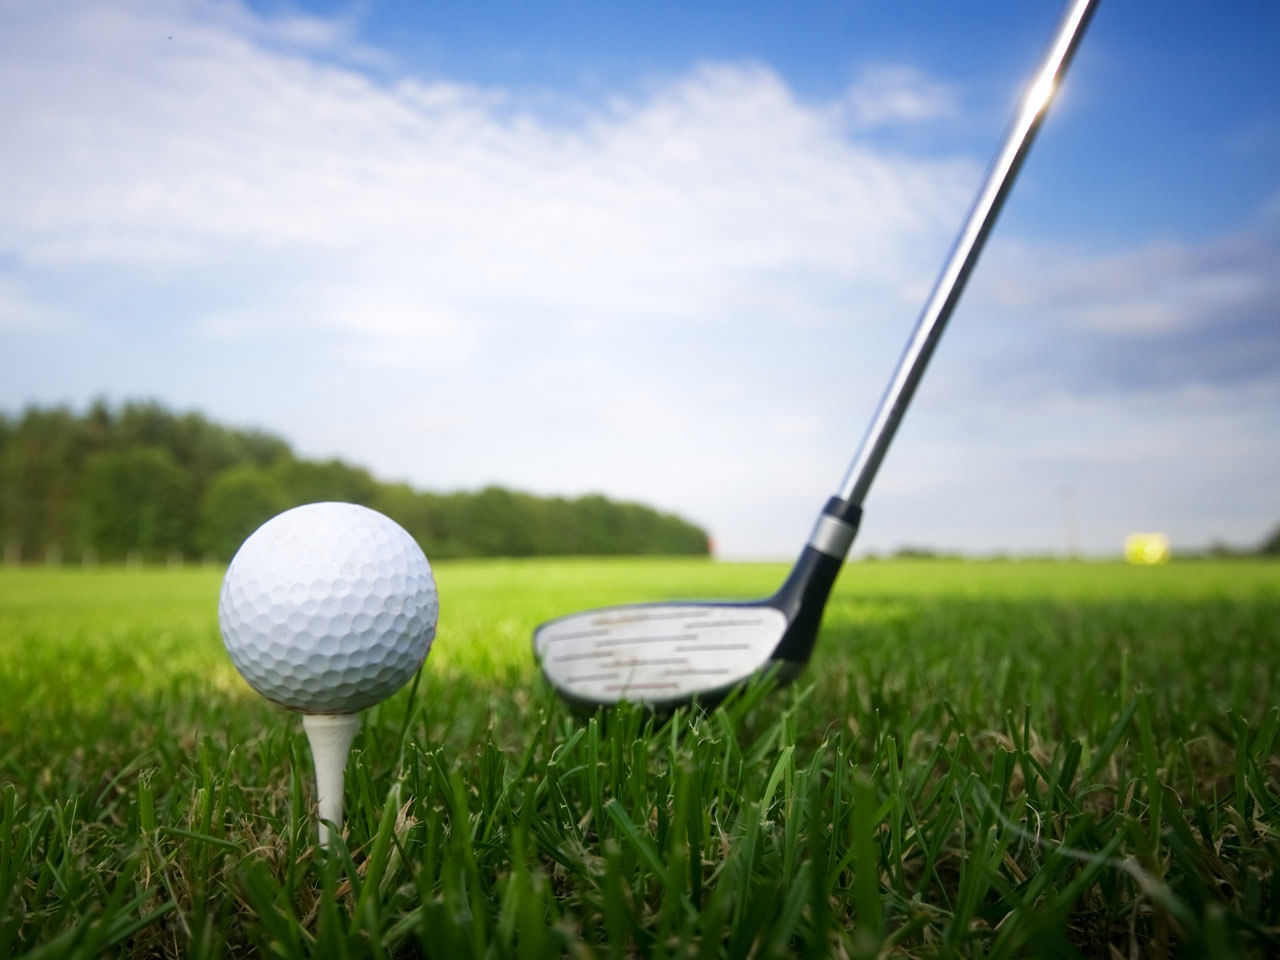 Indian golfers can finish amongst medals: Coach Jasjit Singh